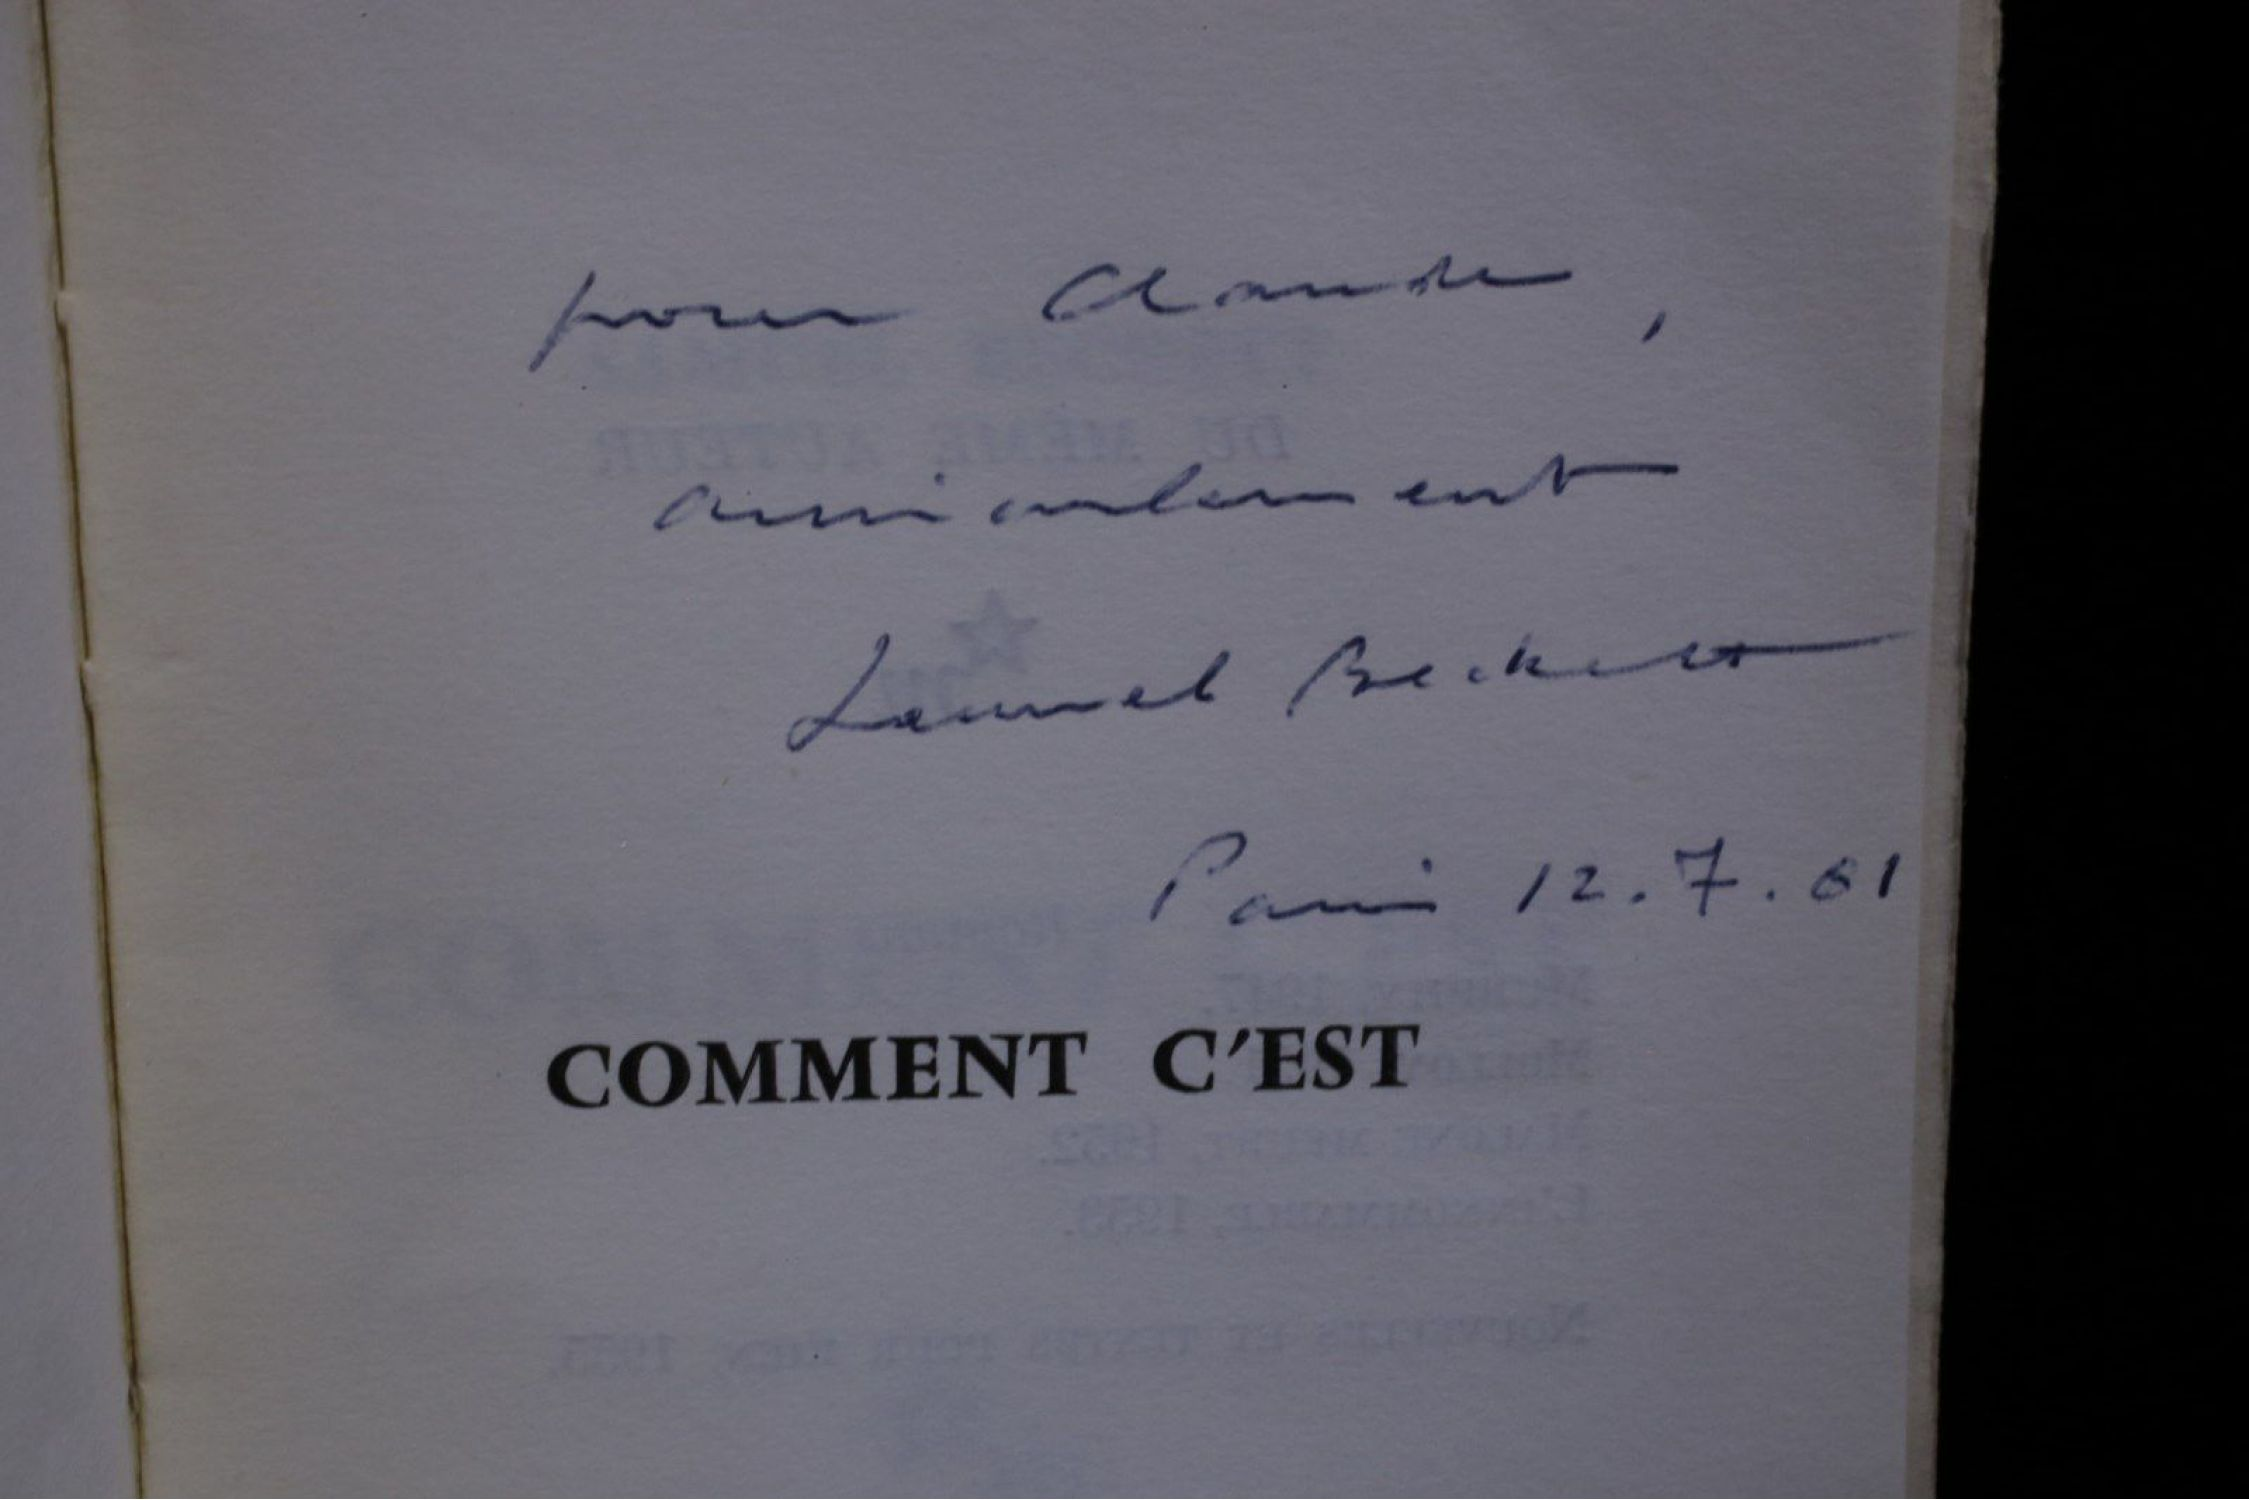 Beckett Comment Cest Signed Book First Edition Edition